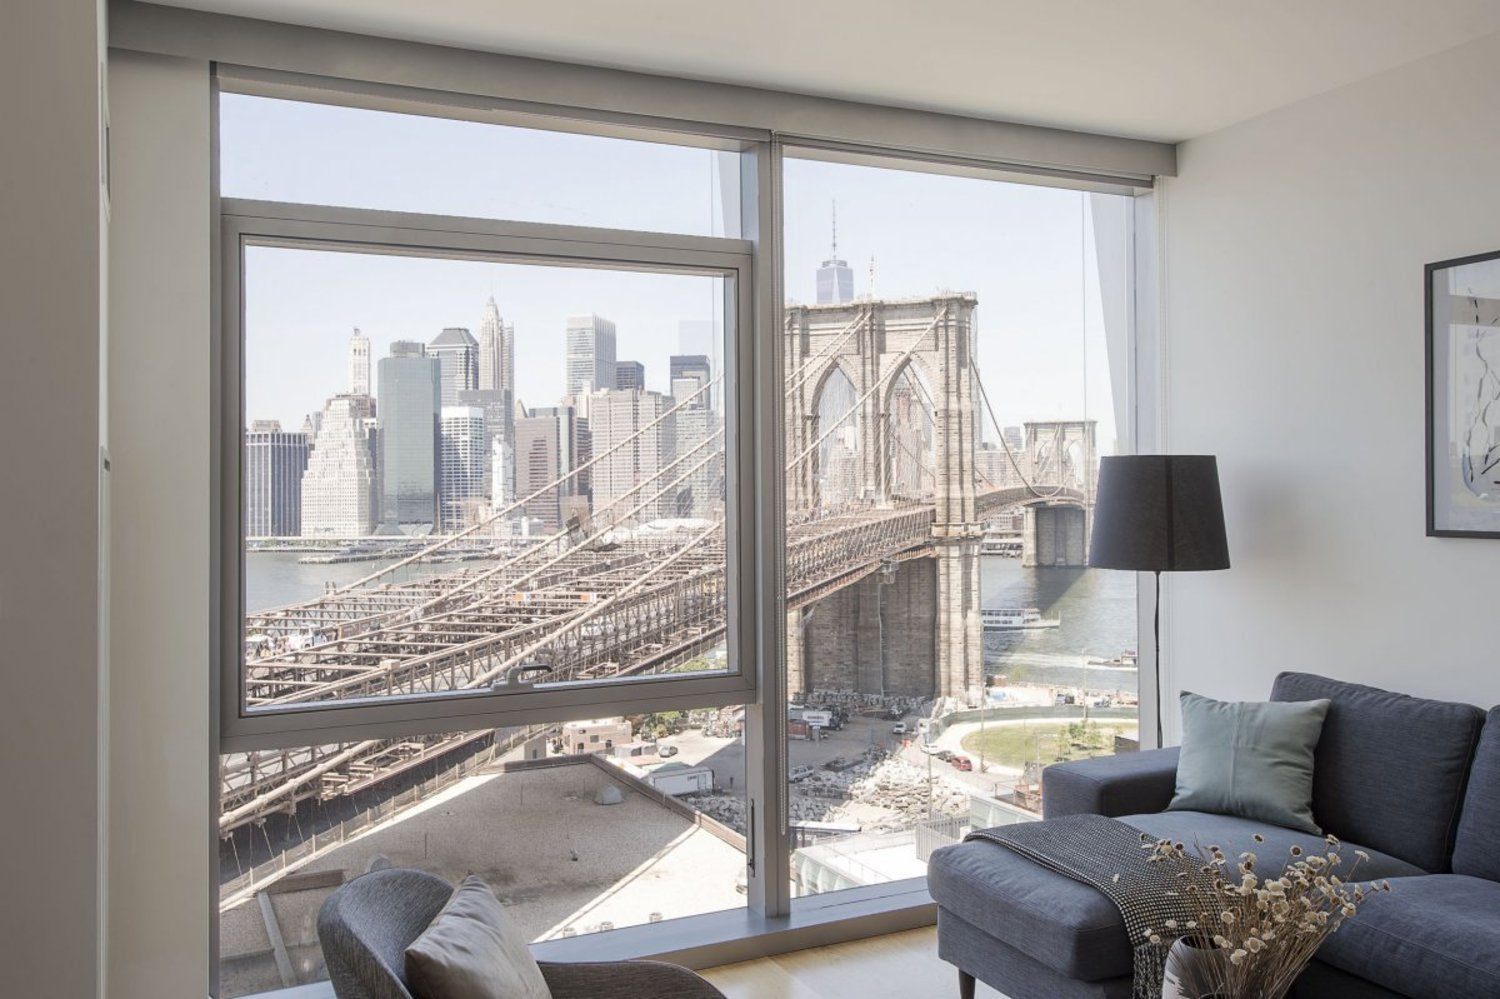 Though the views are different in each unit, the fact that the 60 Water is a mere 85 feet from the Brooklyn Bridge is definitely a plus.